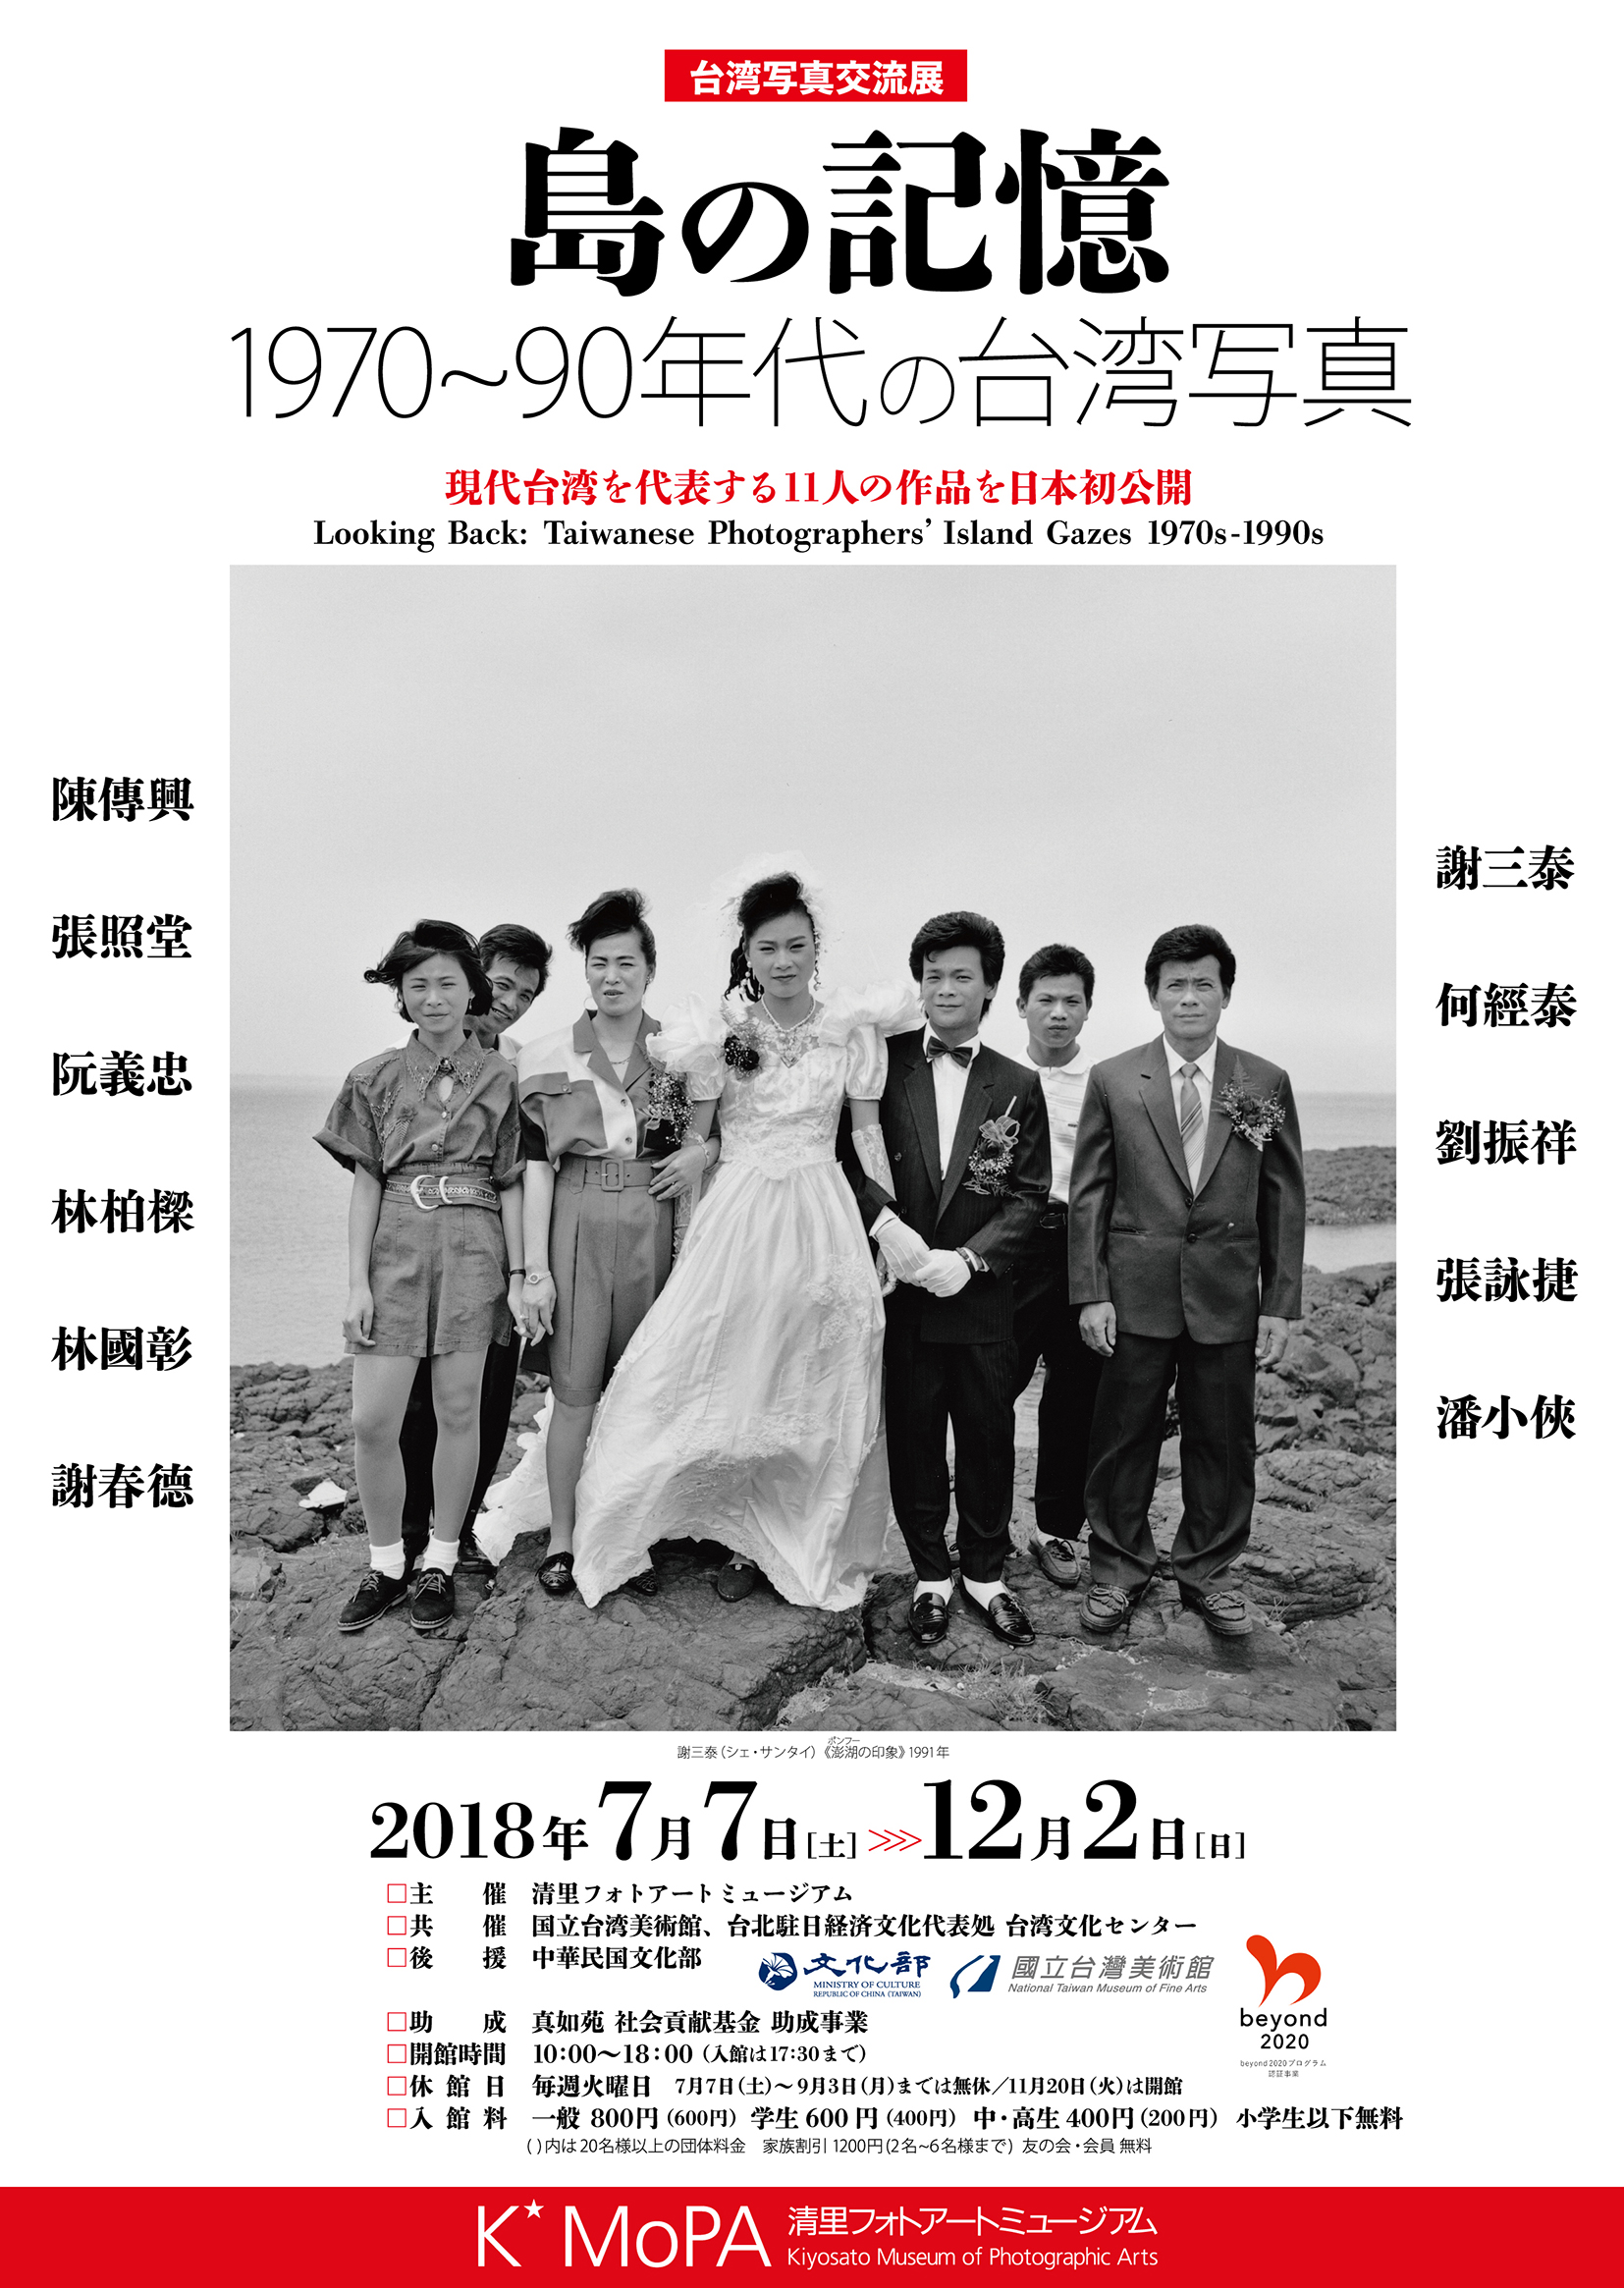 Japan photography exhibition to look back on Taiwan history